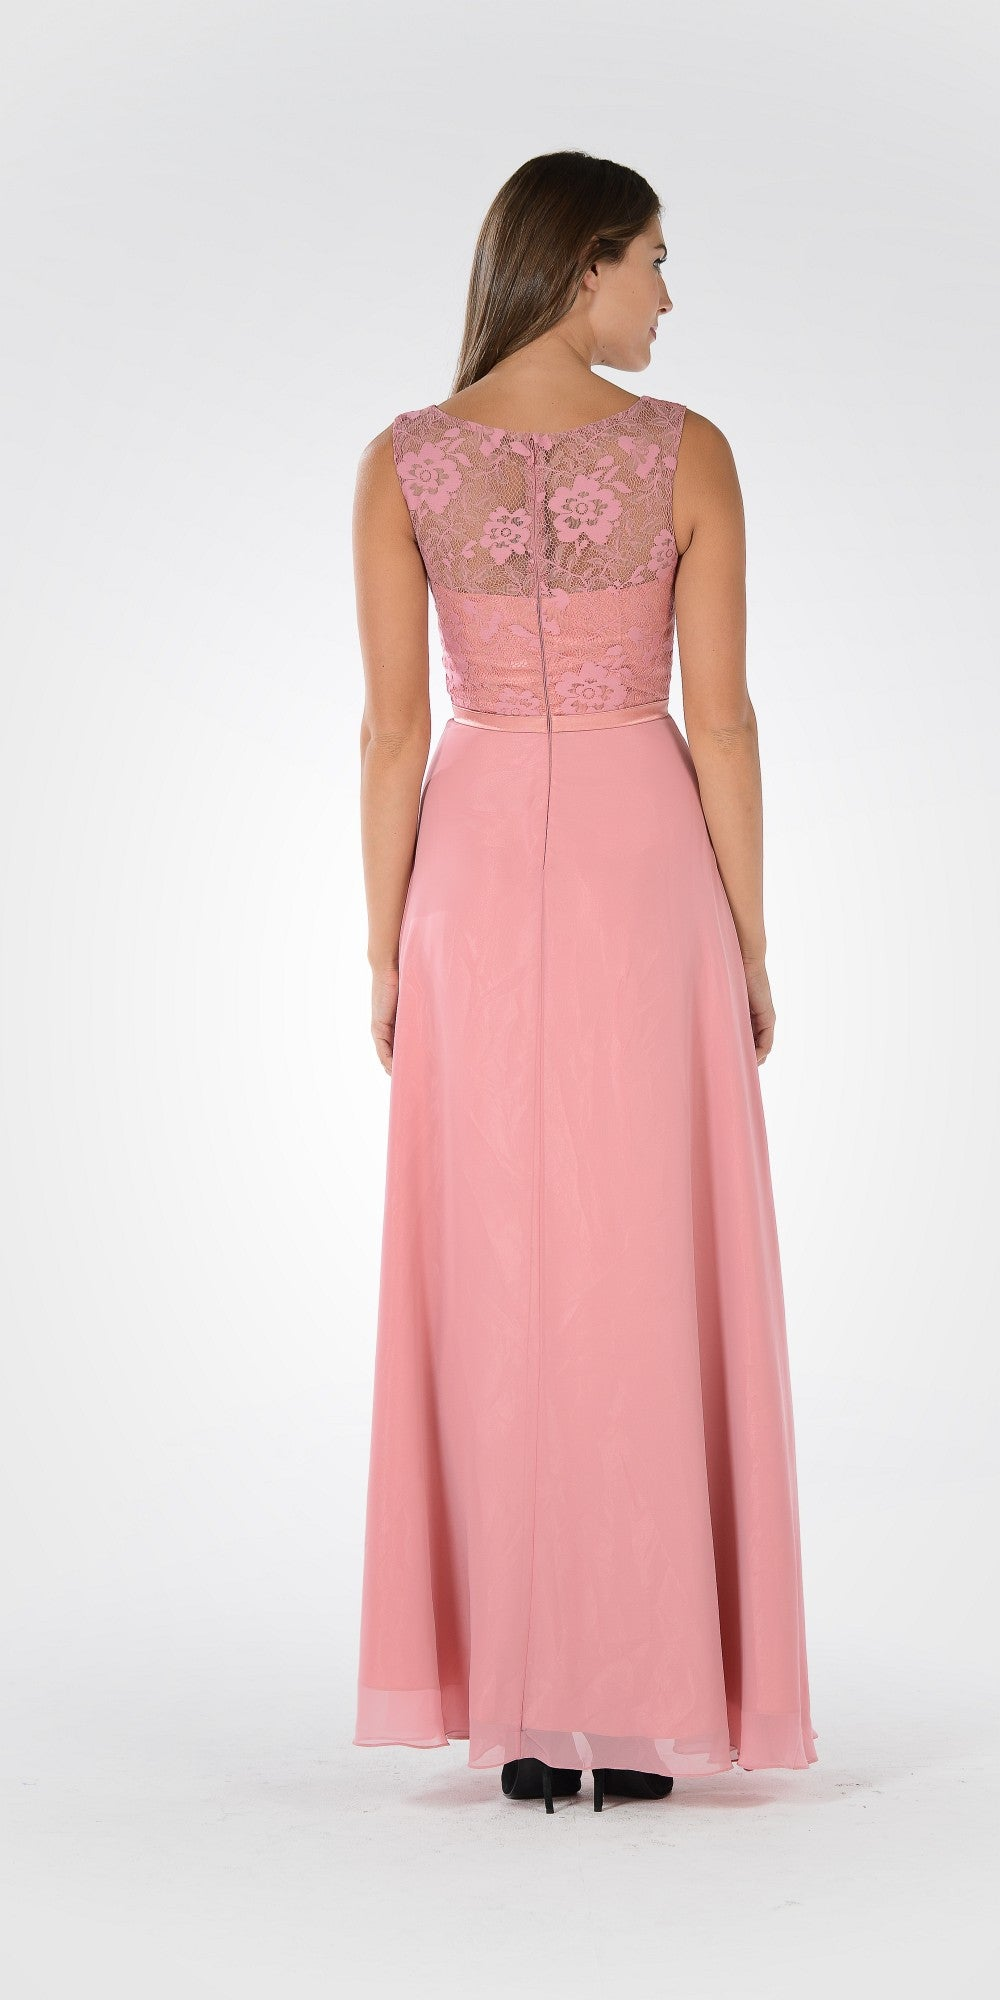 Poly USA 7772 Sleeveless A-line Formal Dress with Mid Sleeves Lace ...